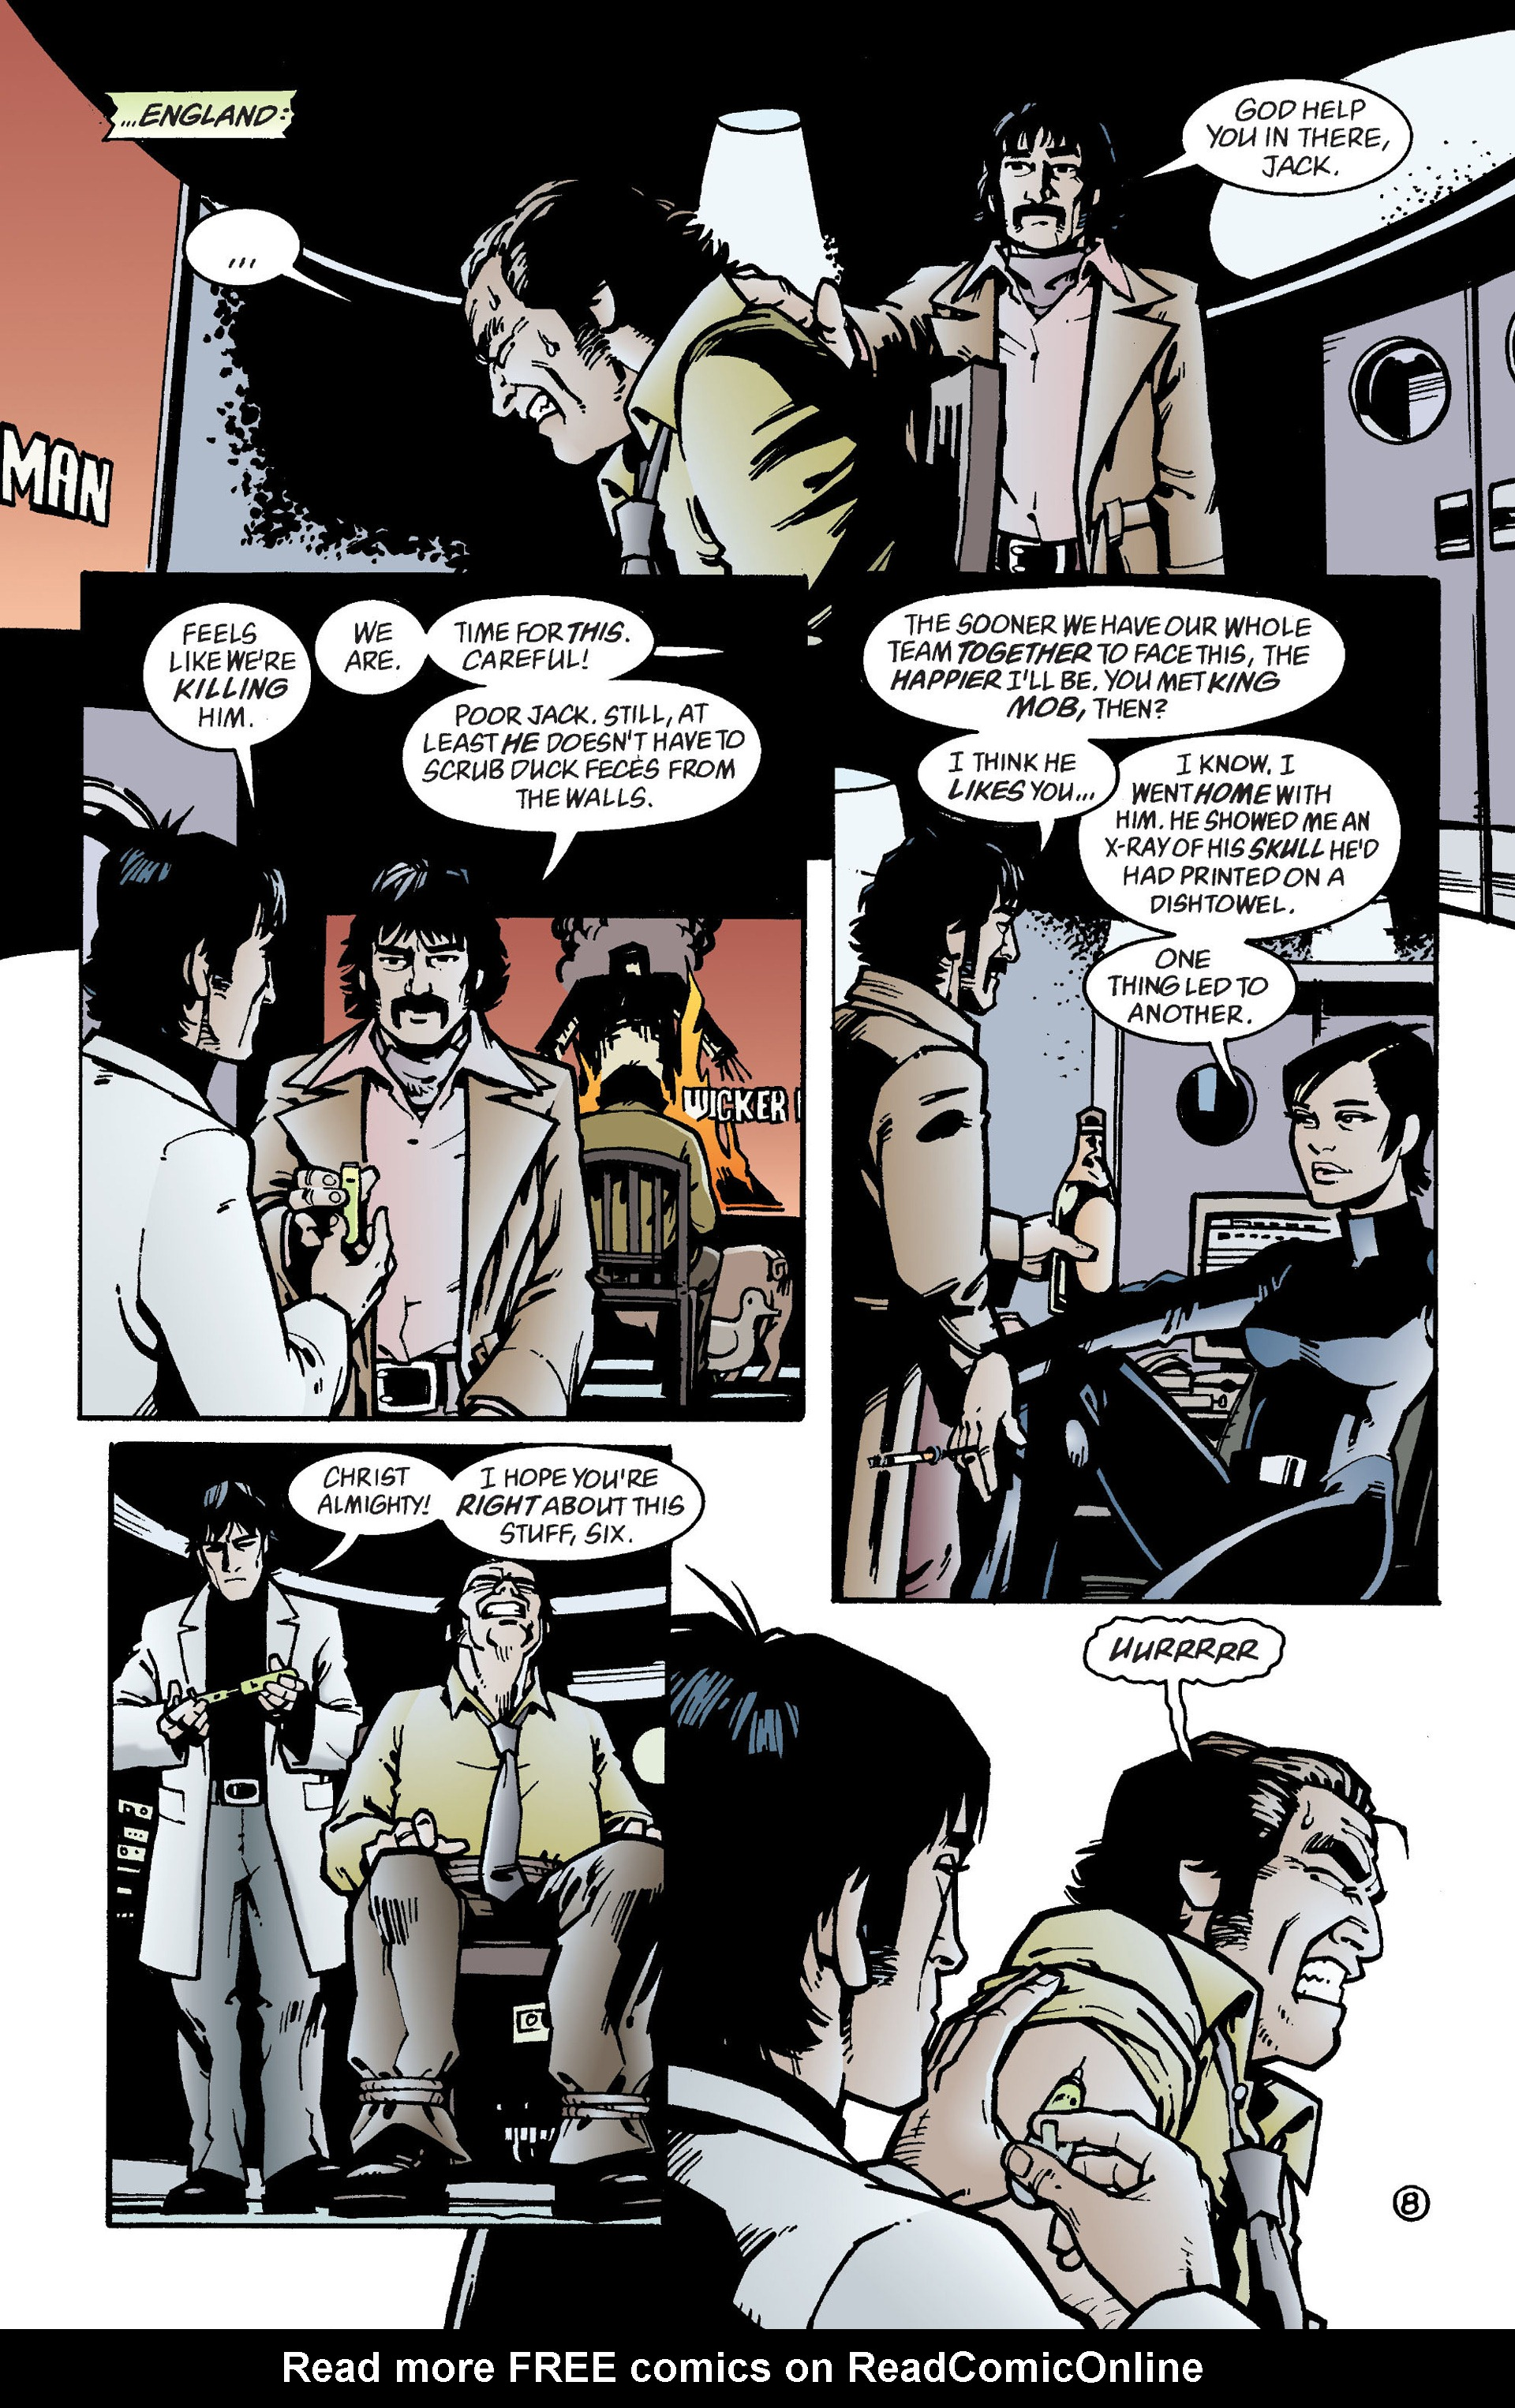 The Invisibles v10 010 10   Read All Comics Online For Free